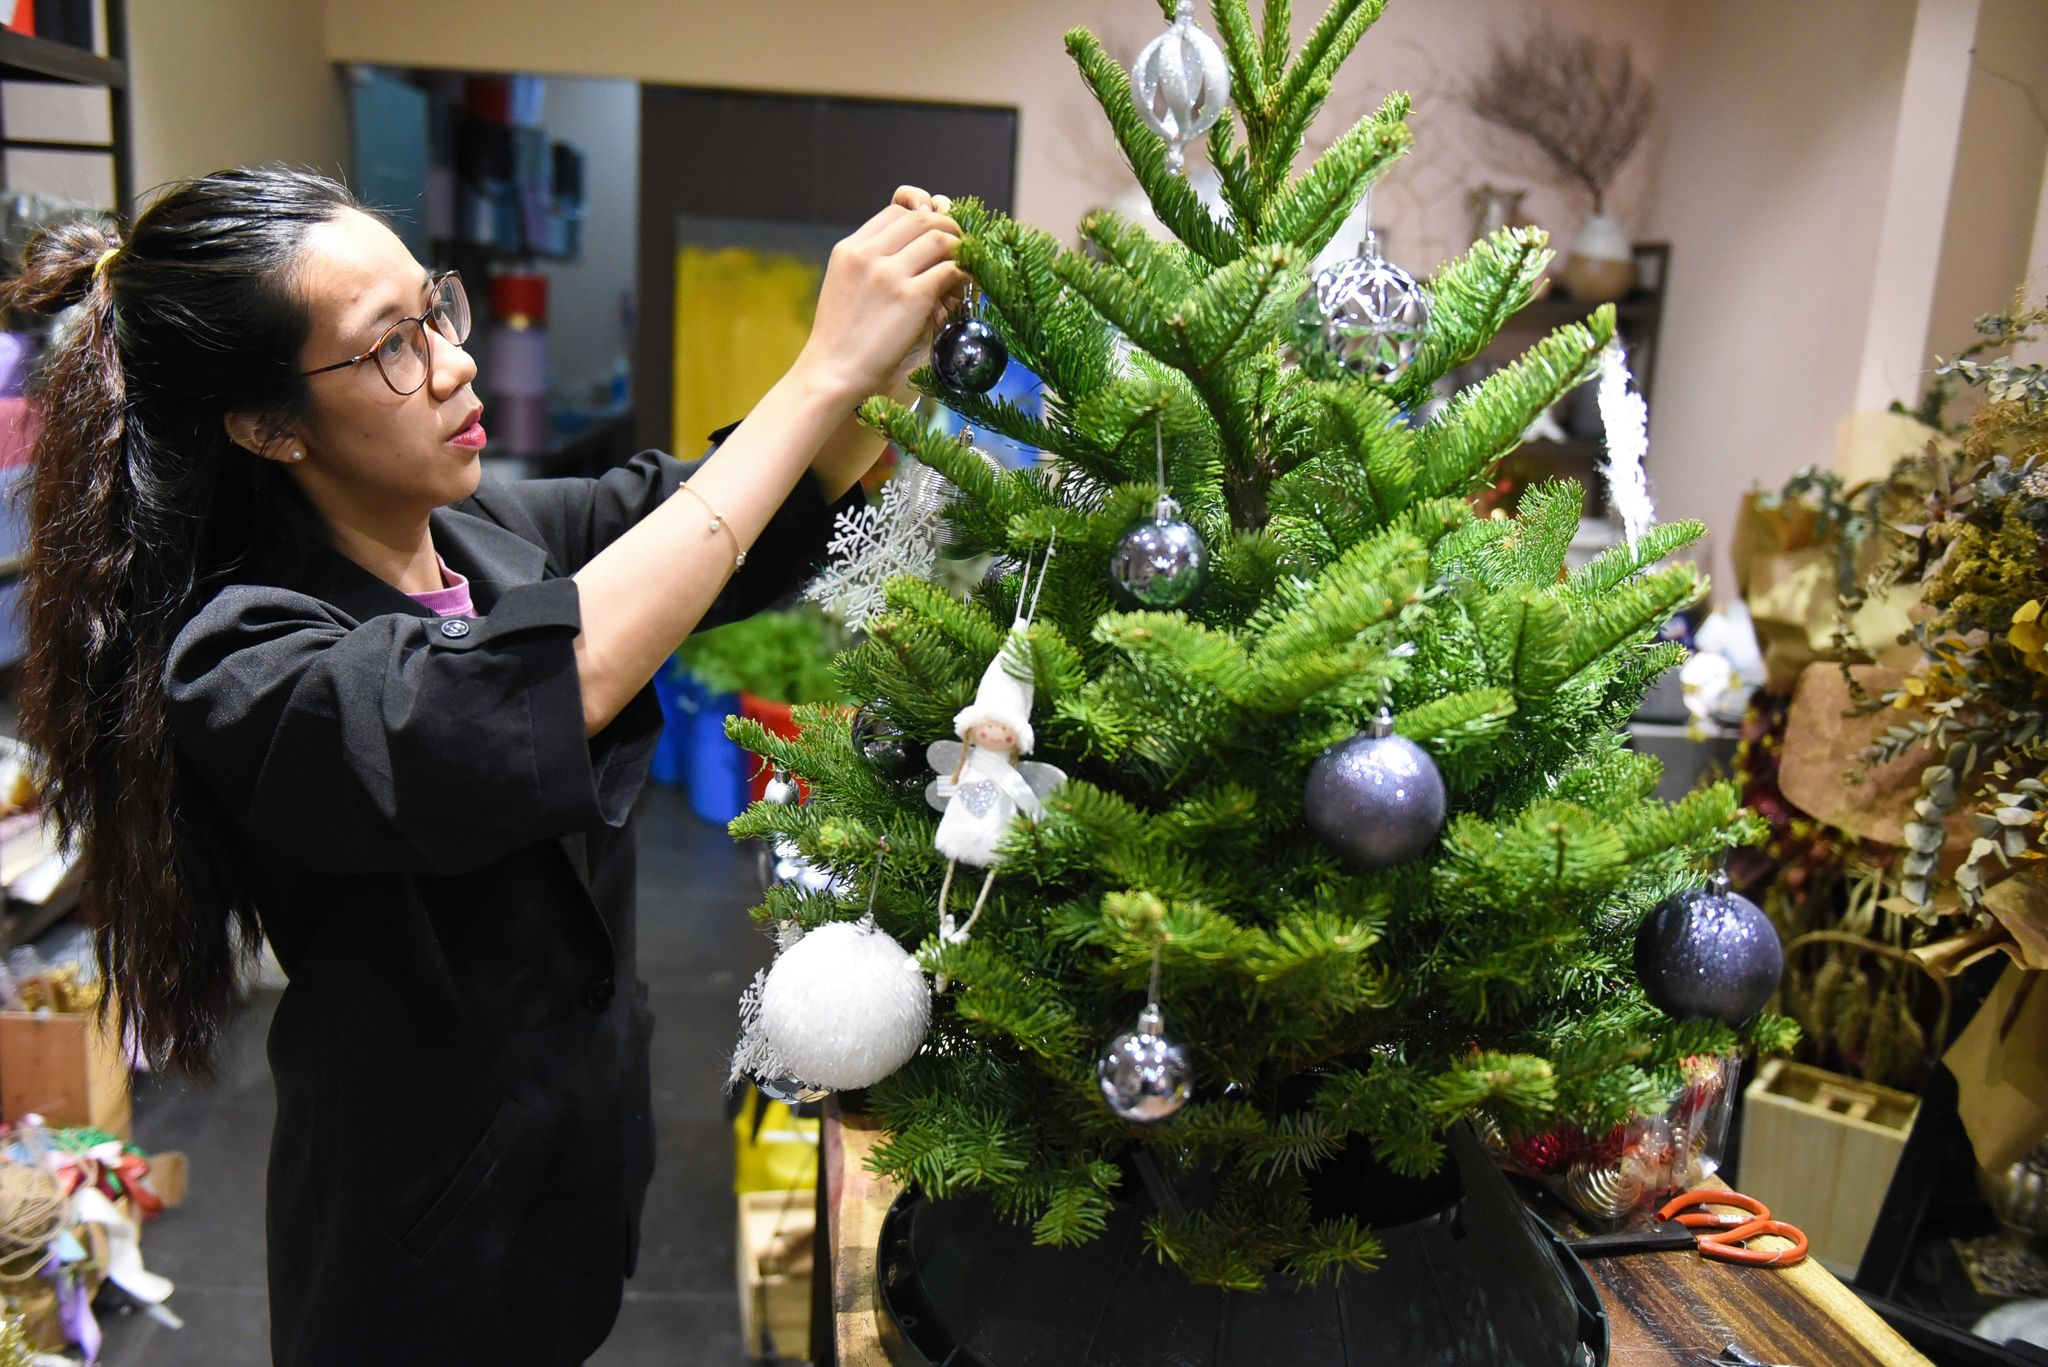 Vu Hong Hanh, manager of a shop on District 3's Vo Thi Sau Street, is preparing a noble fir imported from the U.S. Photo: Ngoc Phuong/ Tuoi Tre News